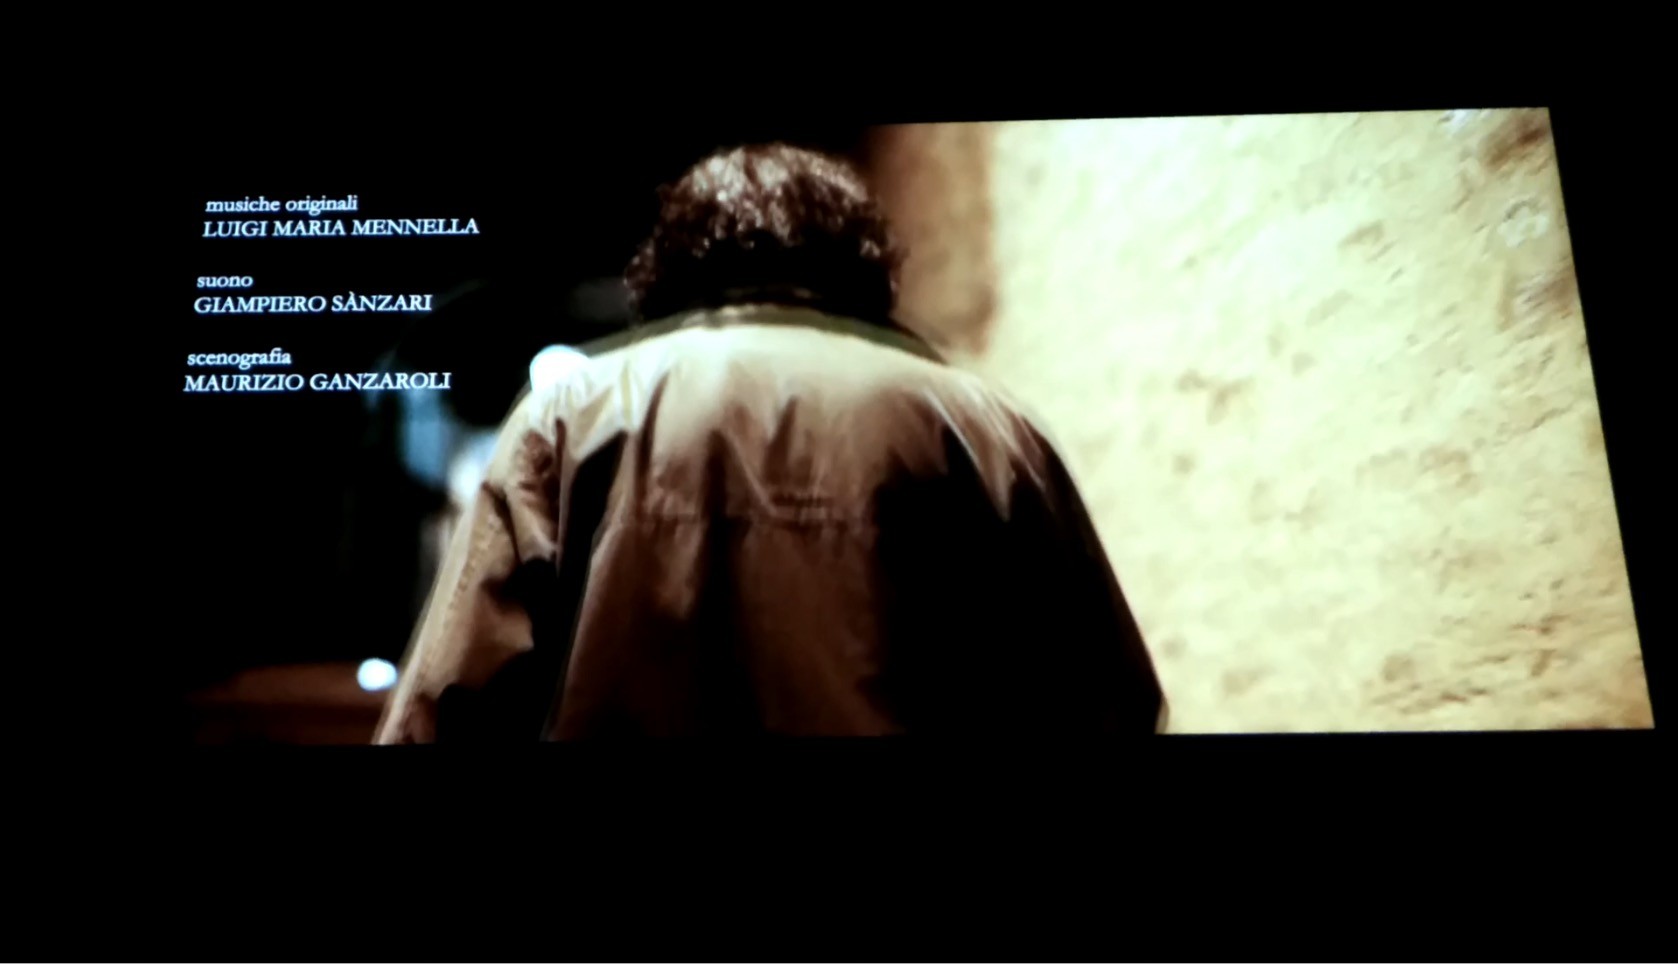 """image of the film screening which shows Luigi Maria Mennella as music composer of the movie """"Un Padre"""" by Roberto Gneo starring Luca Lionello"""